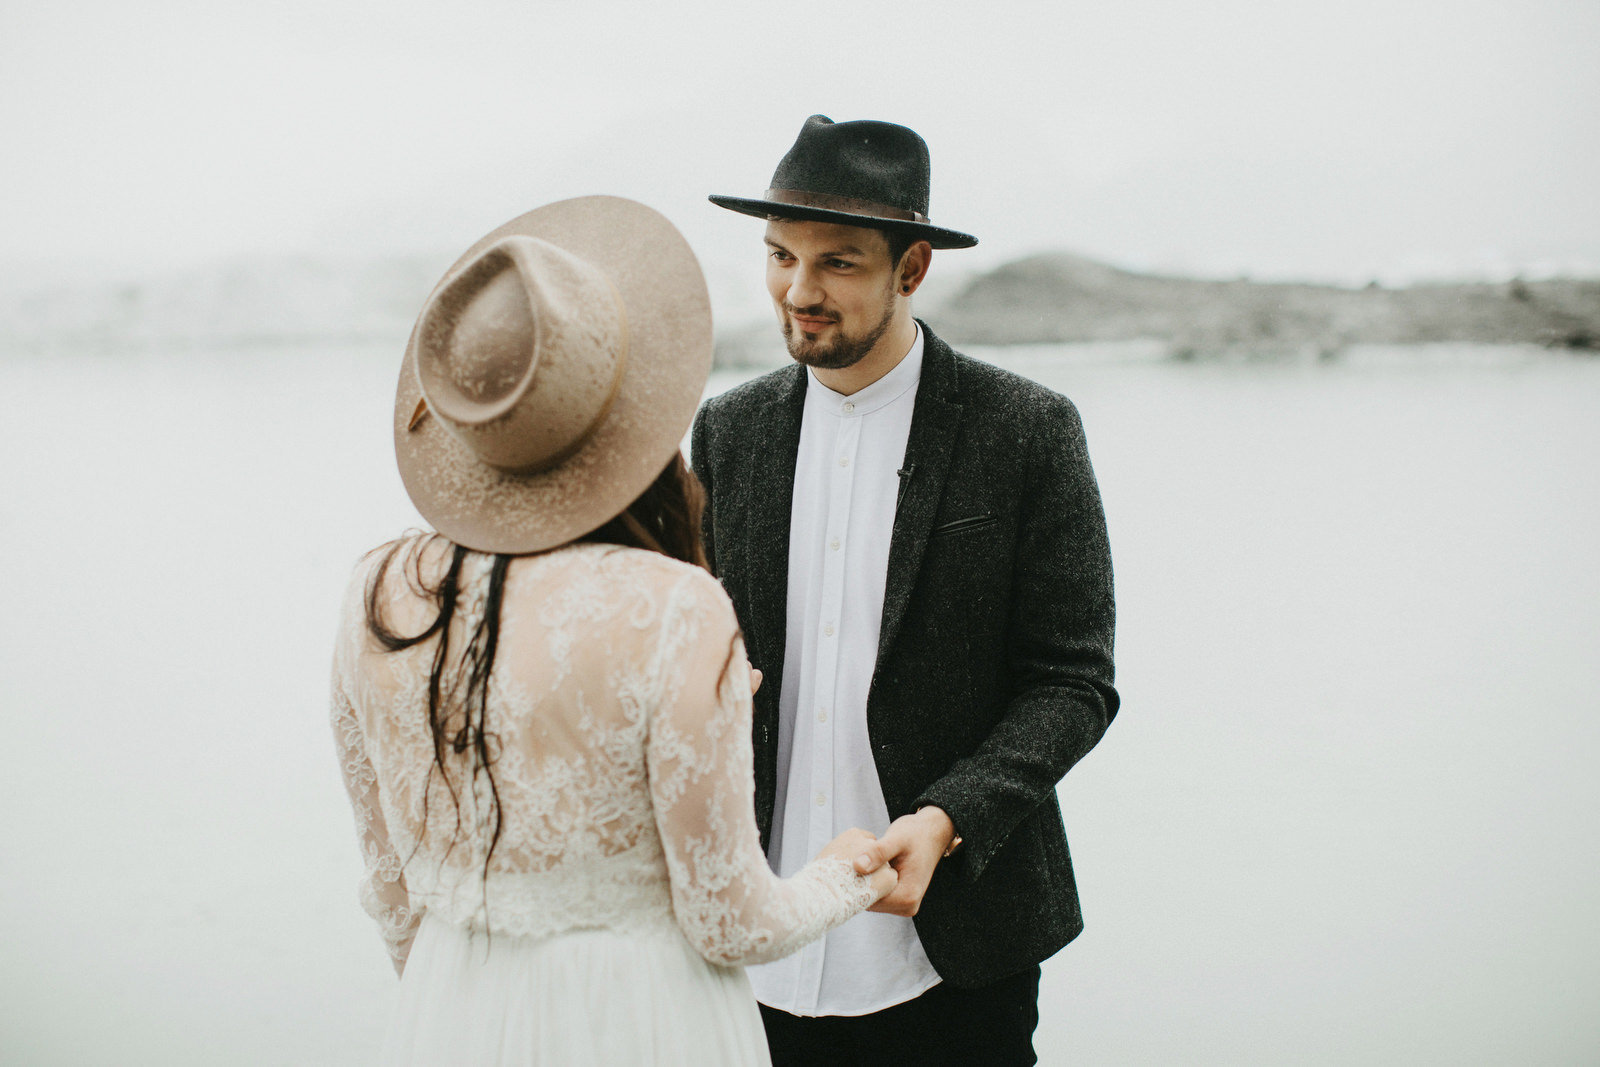 athena-and-camron-alaska-elopement-wedding-inspiration-india-earl-athena-grace-glacier-lagoon-wedding83